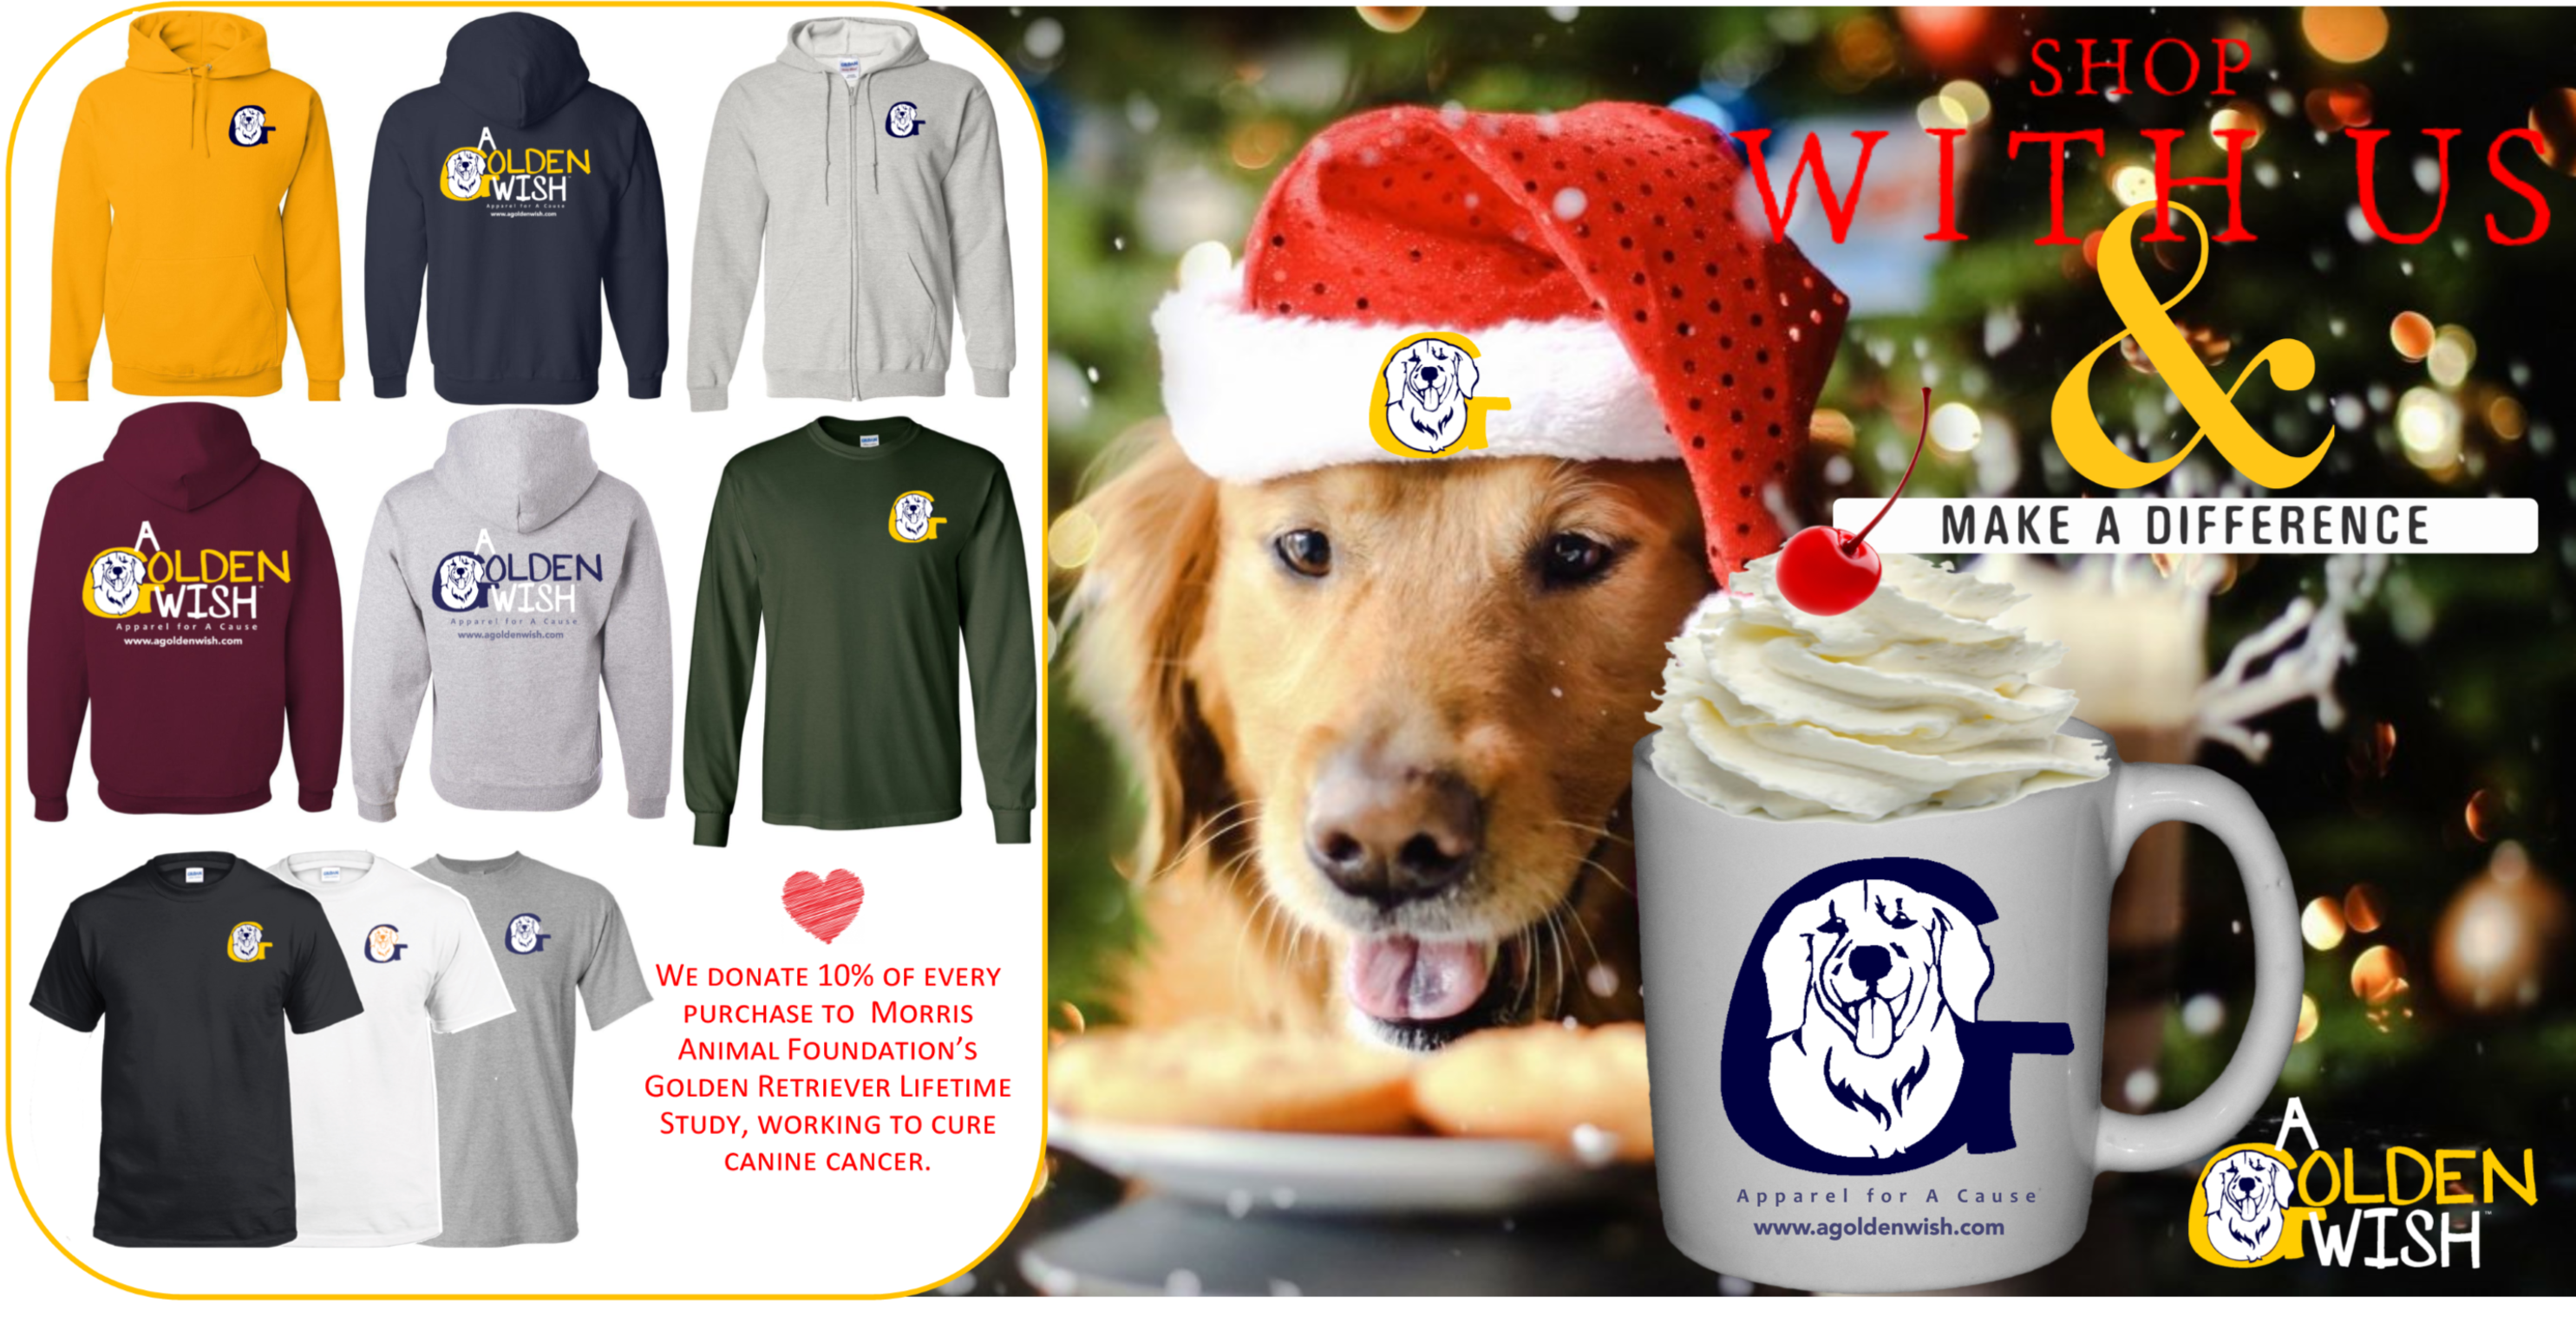 golden retriever dog apparel for a cause